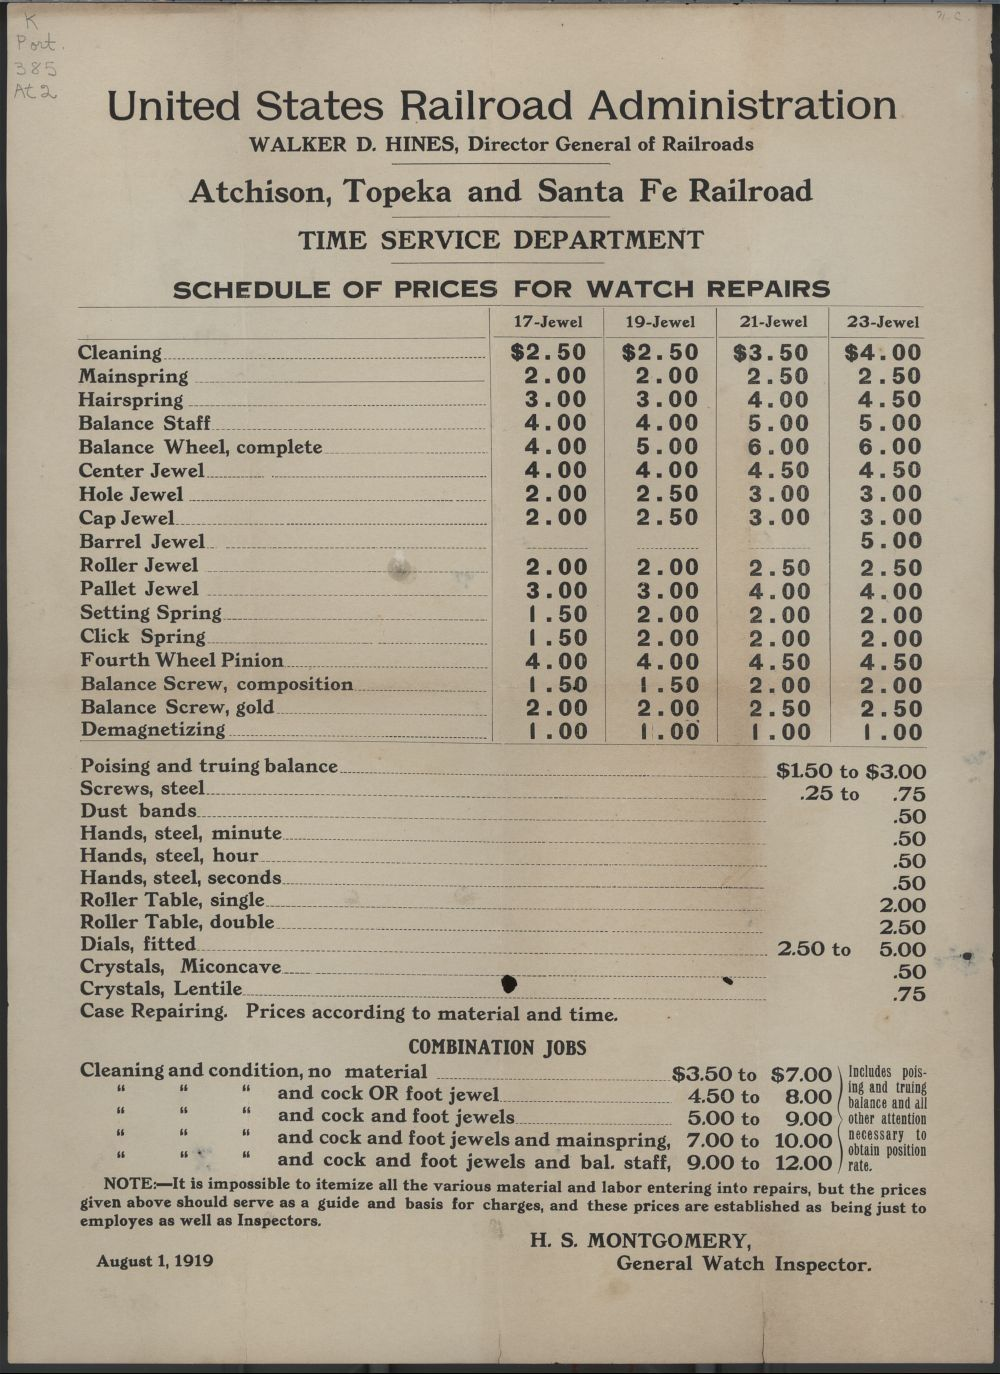 Atchison, Topeka and Santa Fe railroad schedule of prices for watch repairs